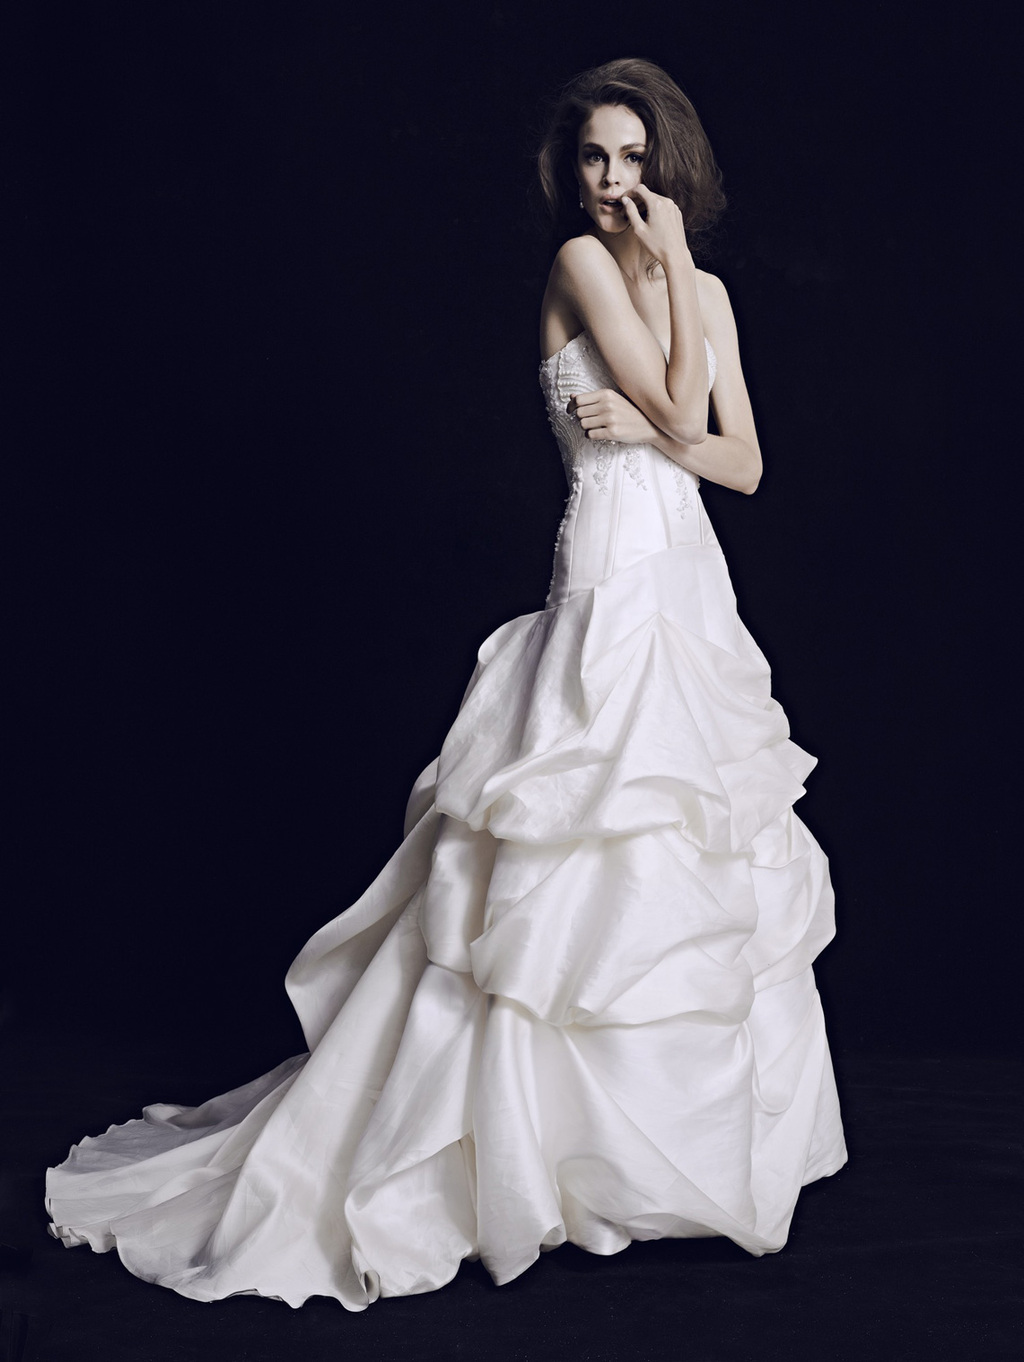 Mariana-hardwick-wedding-dress-2013-bridal-classic-10.full